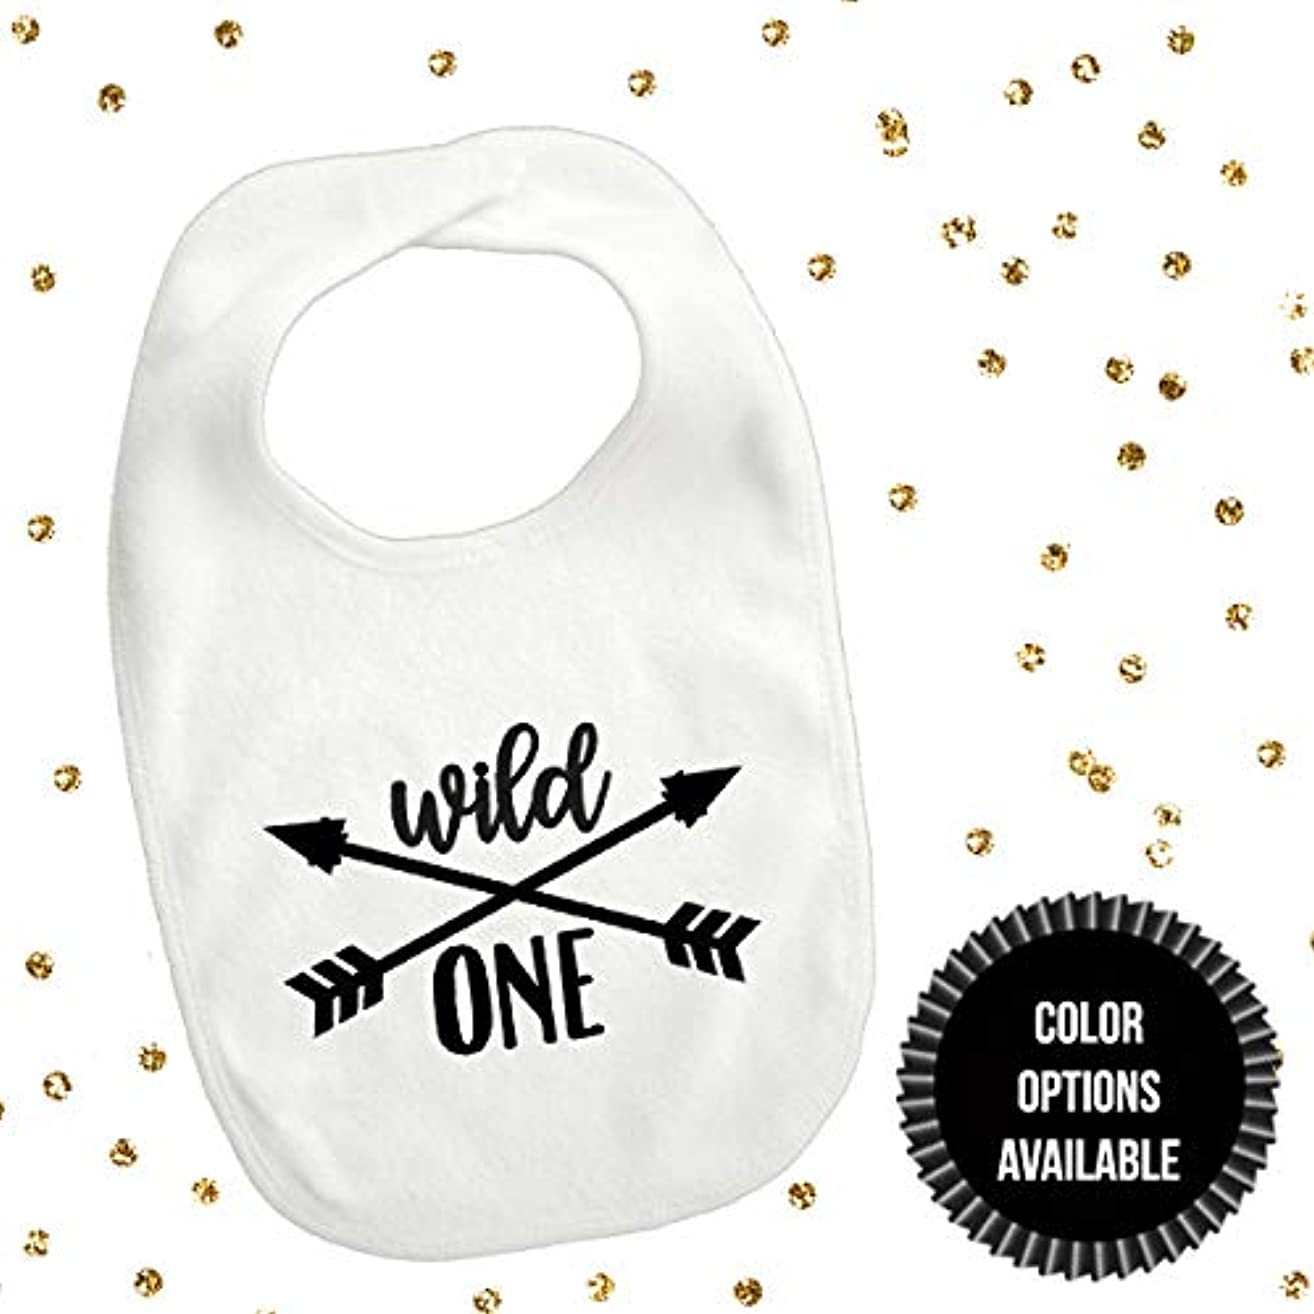 1 piece wild ONE crossed arrows bib toddler boy girl for first birthday boy girl gift cake smash photo prop